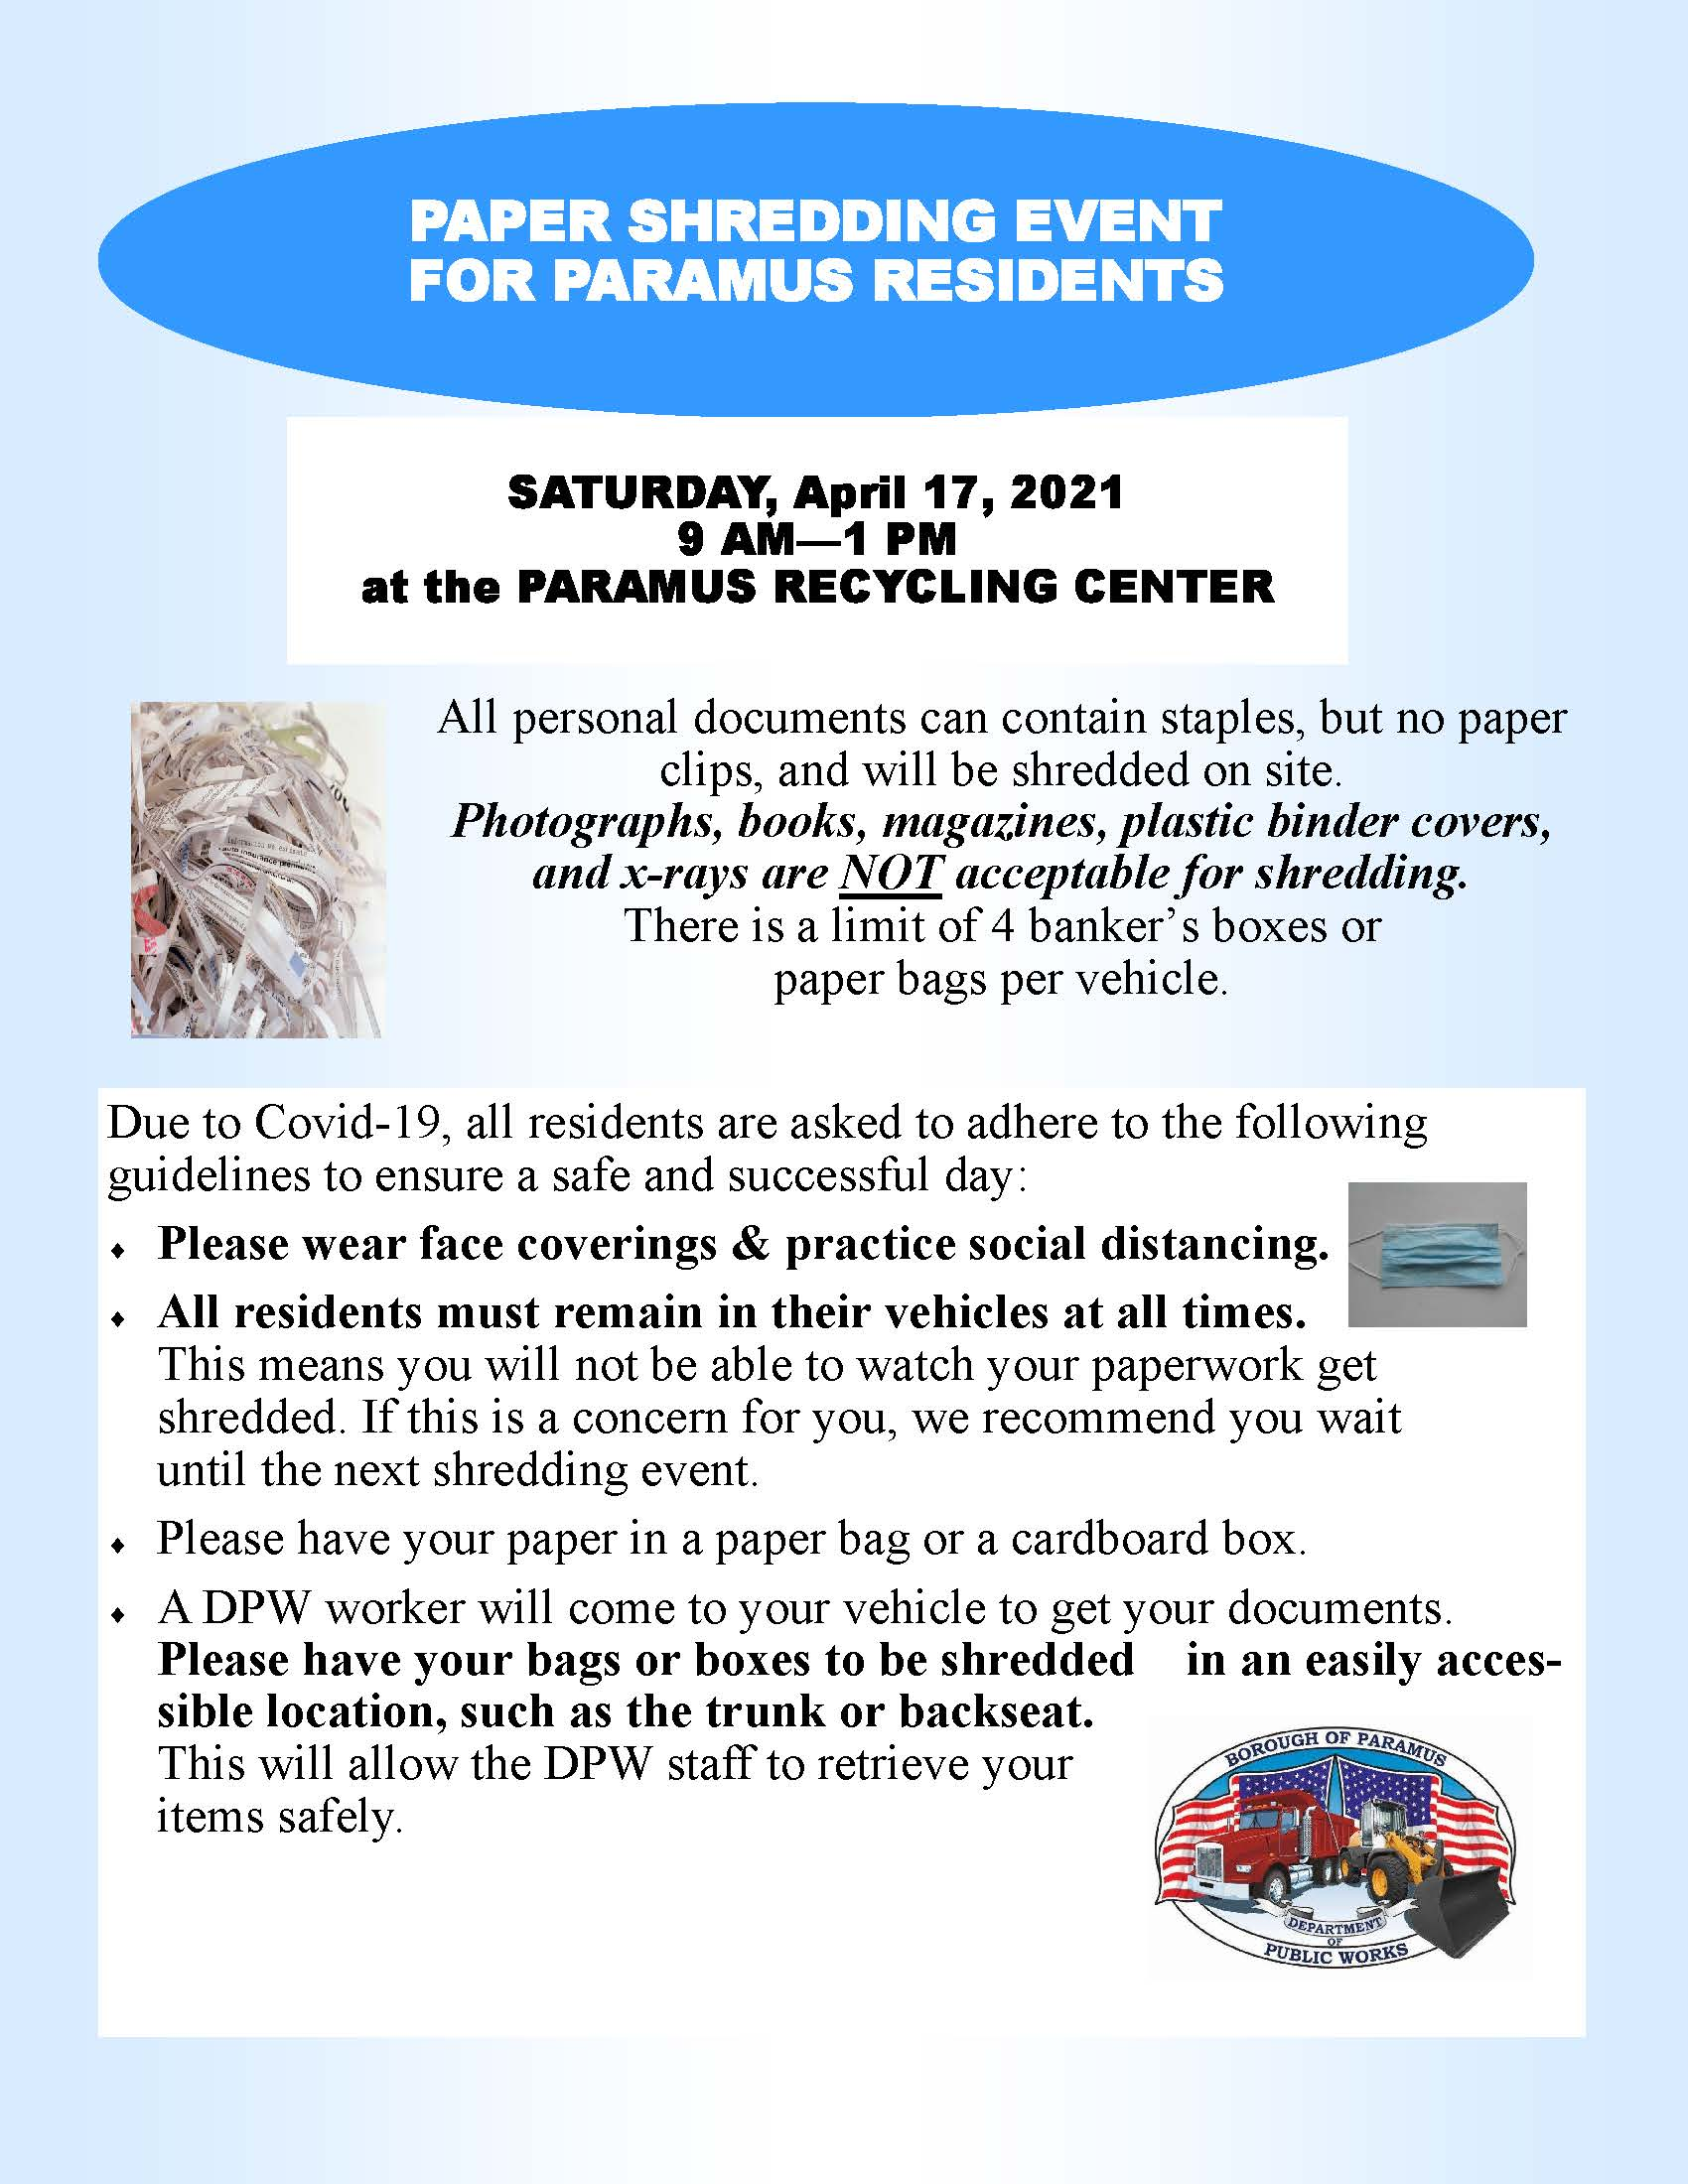 2021 Paramus Paper Shredding Event for Paramus Residents